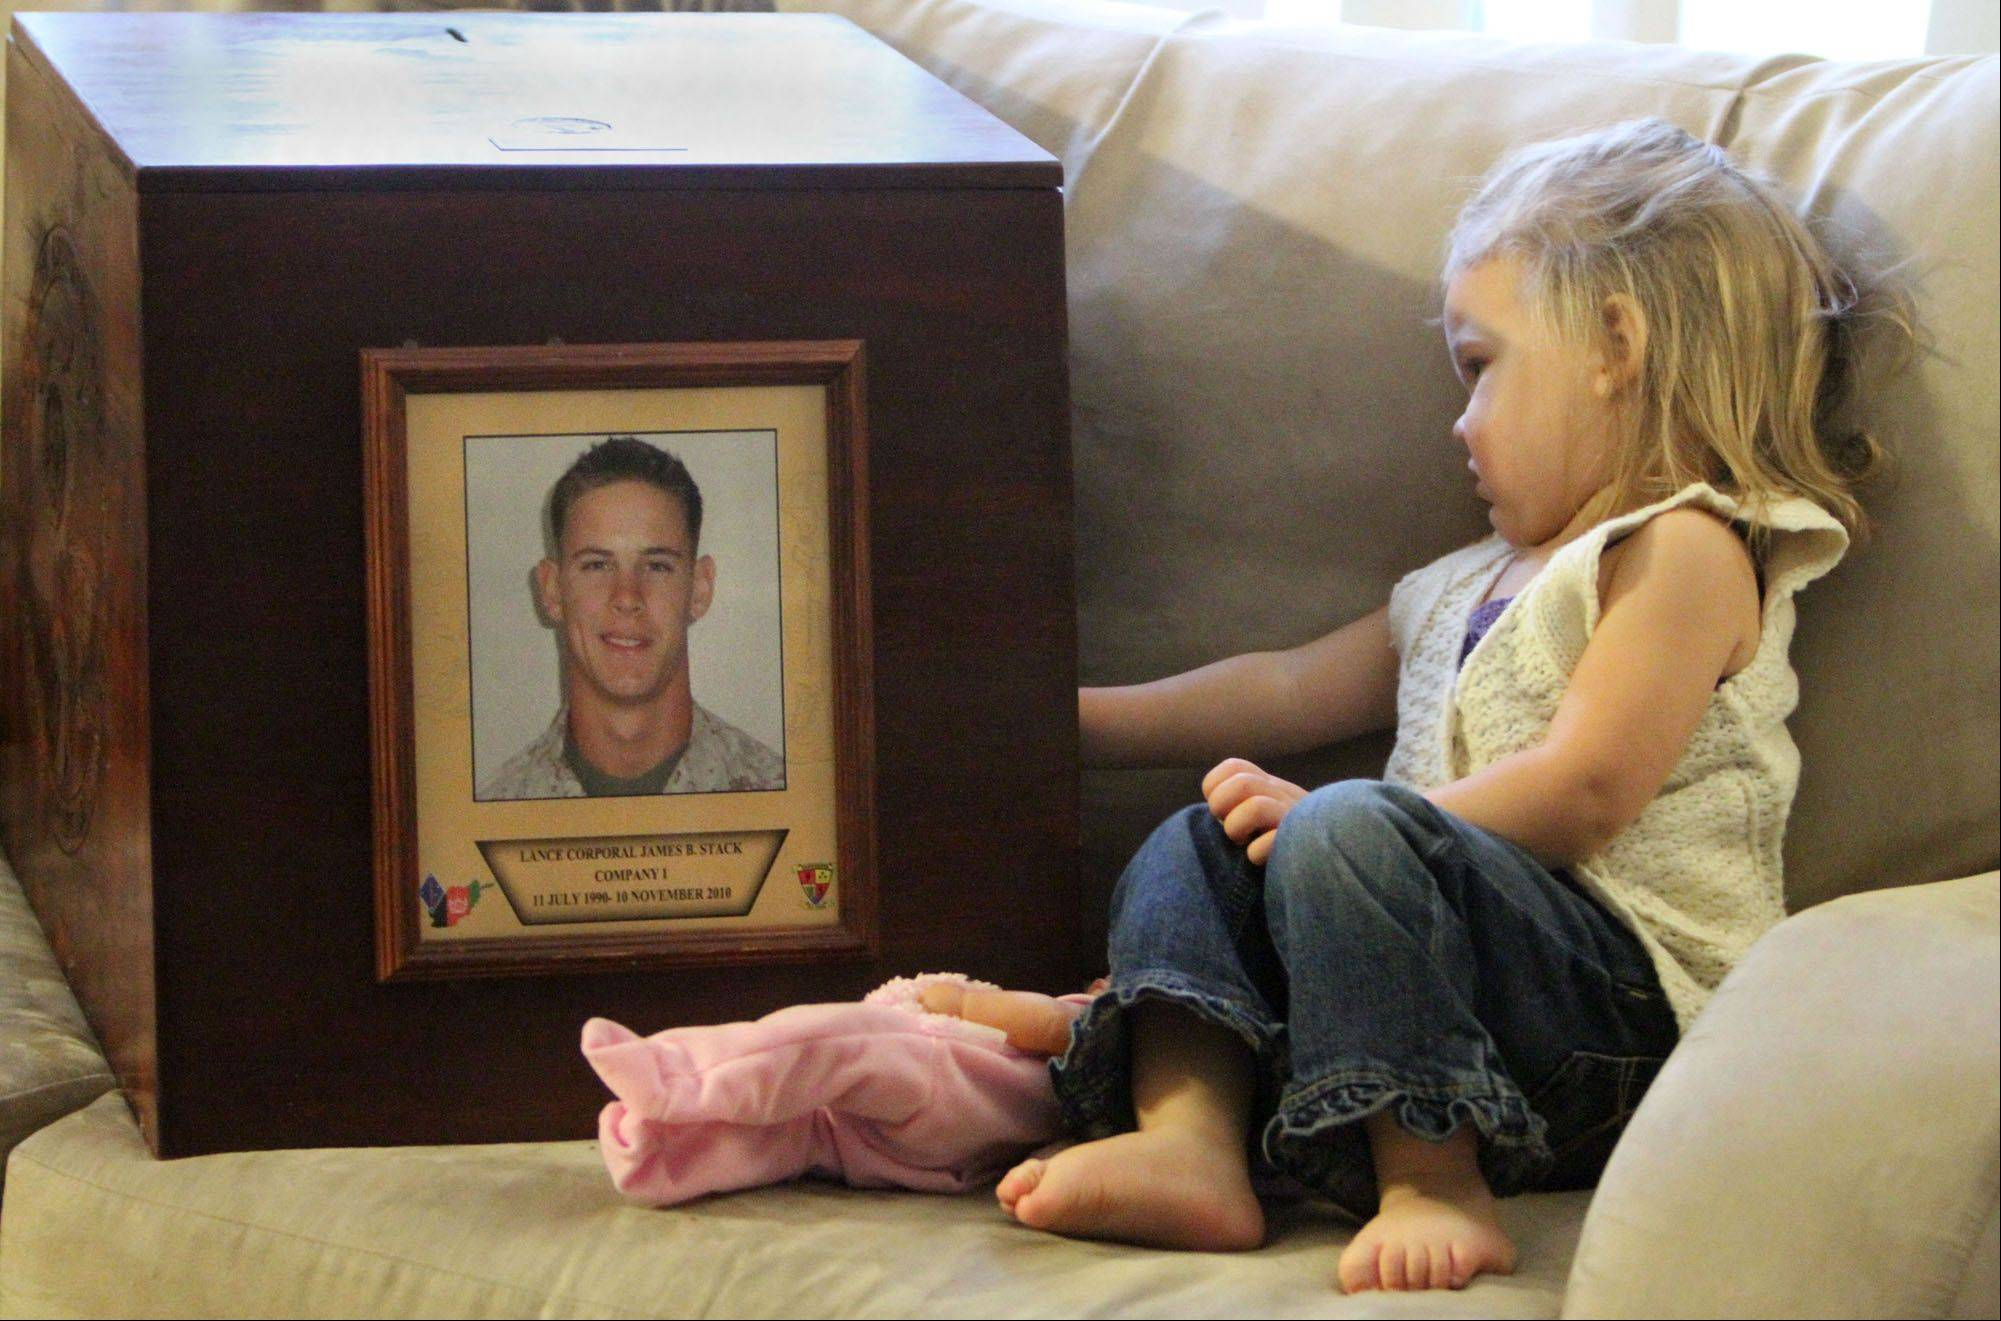 Mikayla Stack sits next to a memorial box madeto honor her father, Marine Lance Cpl. James B. Stack, who died a year ago in Afghanistan's Helmand Province.